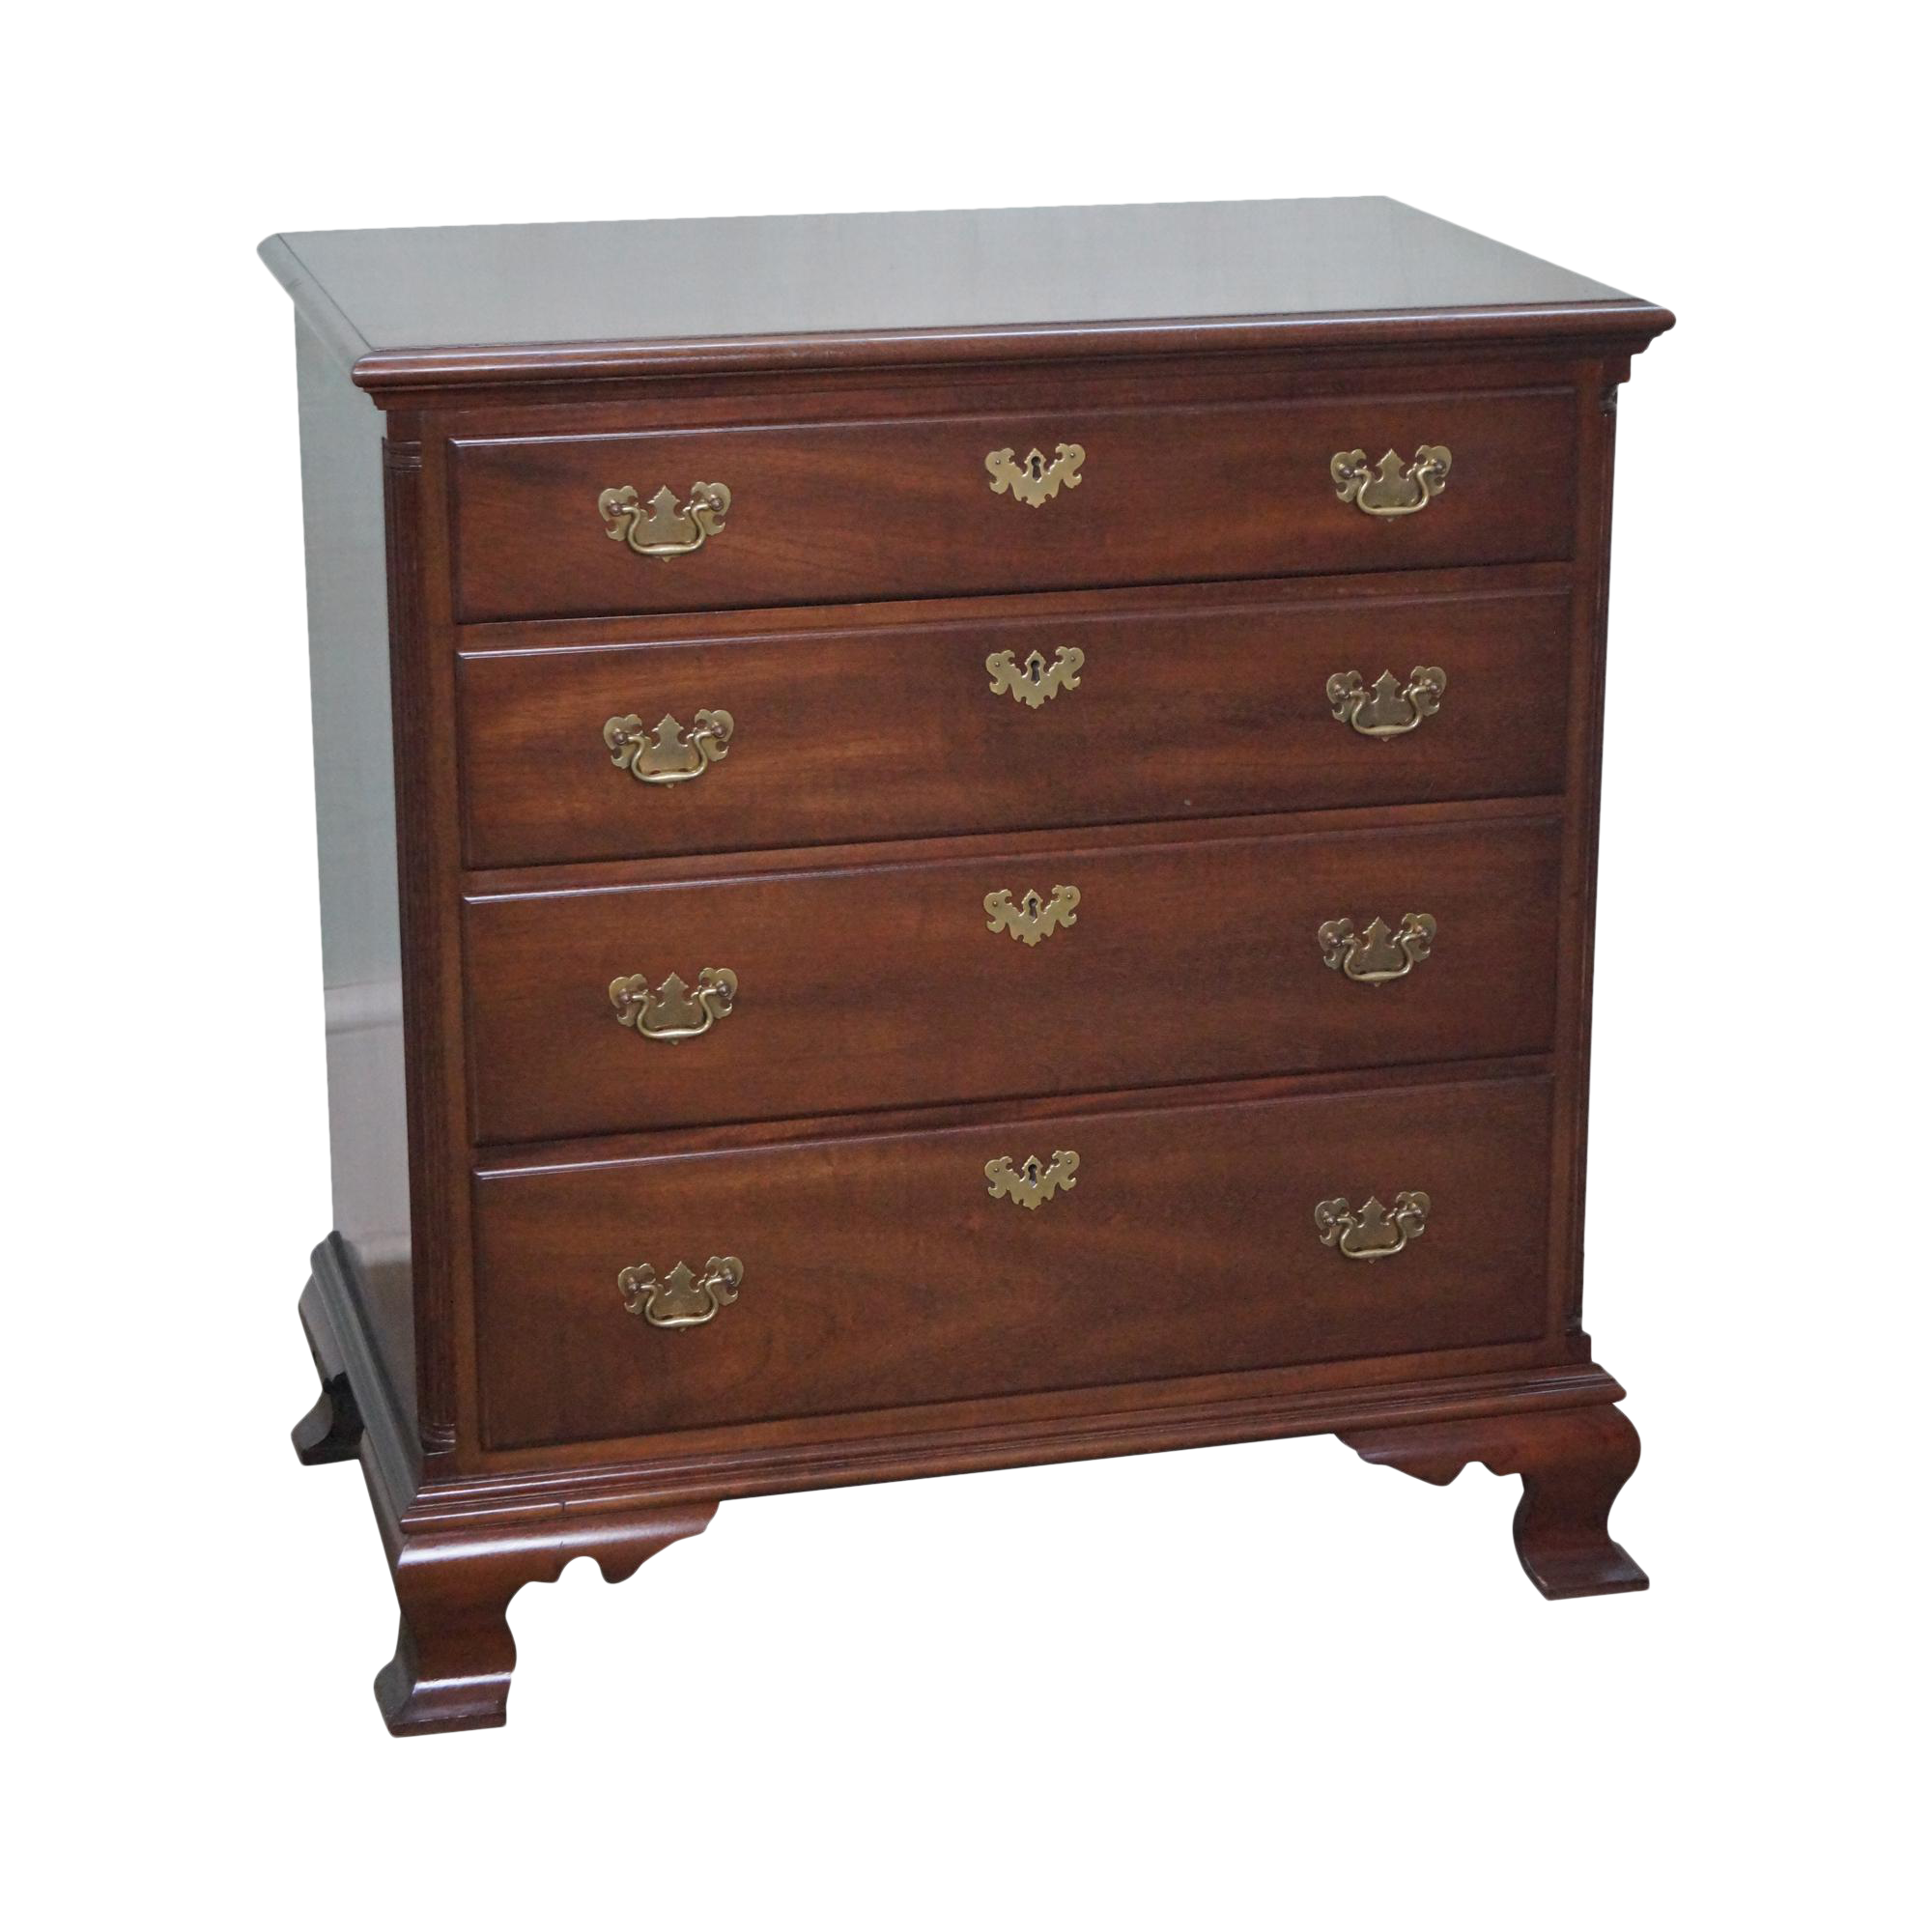 Kittinger Old Dominion Mahogany Chippendale Style Chest of Drawers